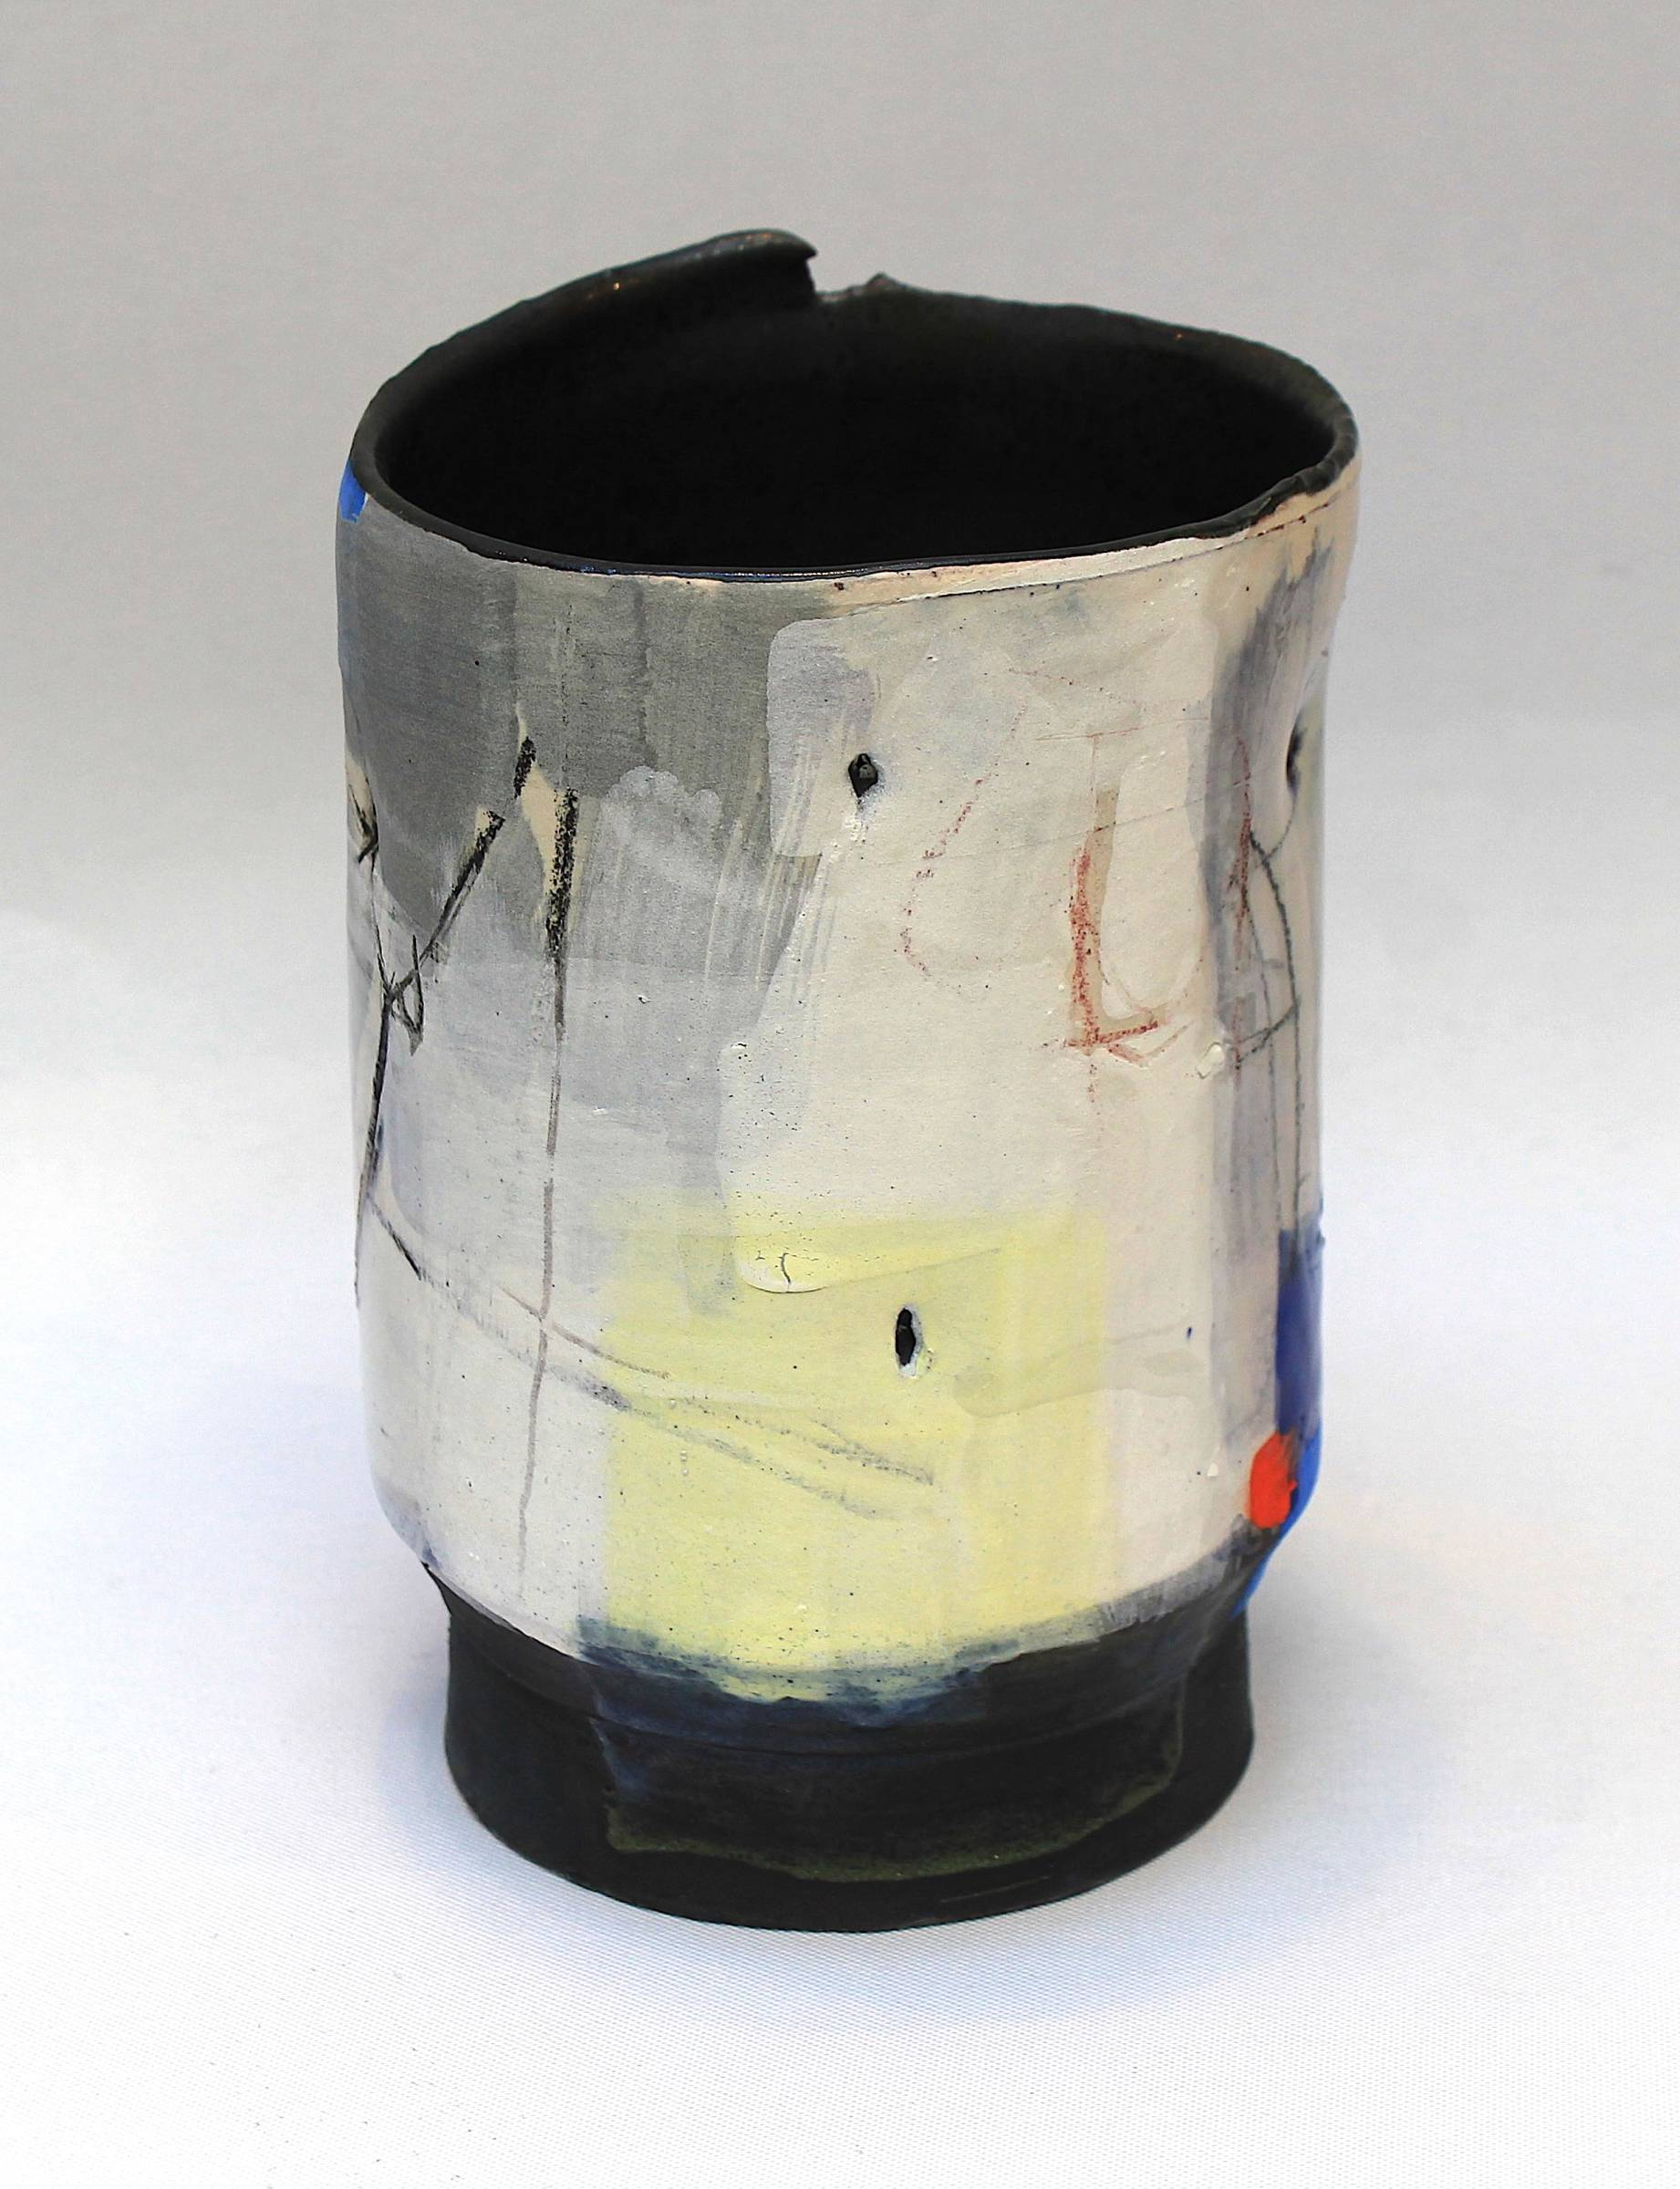 "<span class=""link fancybox-details-link""><a href=""/artists/34-barry-stedman/works/4160-barry-stedman-thrown-vessel-harbour-series-2017/"">View Detail Page</a></span><div class=""artist""><strong>Barry Stedman</strong></div> <div class=""title""><em>Thrown Vessel 'Harbour' Series</em>, 2017</div> <div class=""signed_and_dated"">signed by artist</div> <div class=""medium"">earthenware</div> <div class=""dimensions"">17 x 11 cm<br /> 6 3/4 x 4 3/8 inches</div><div class=""copyright_line"">OwnArt: £ 24 x 10 Months, 0% APR</div>"